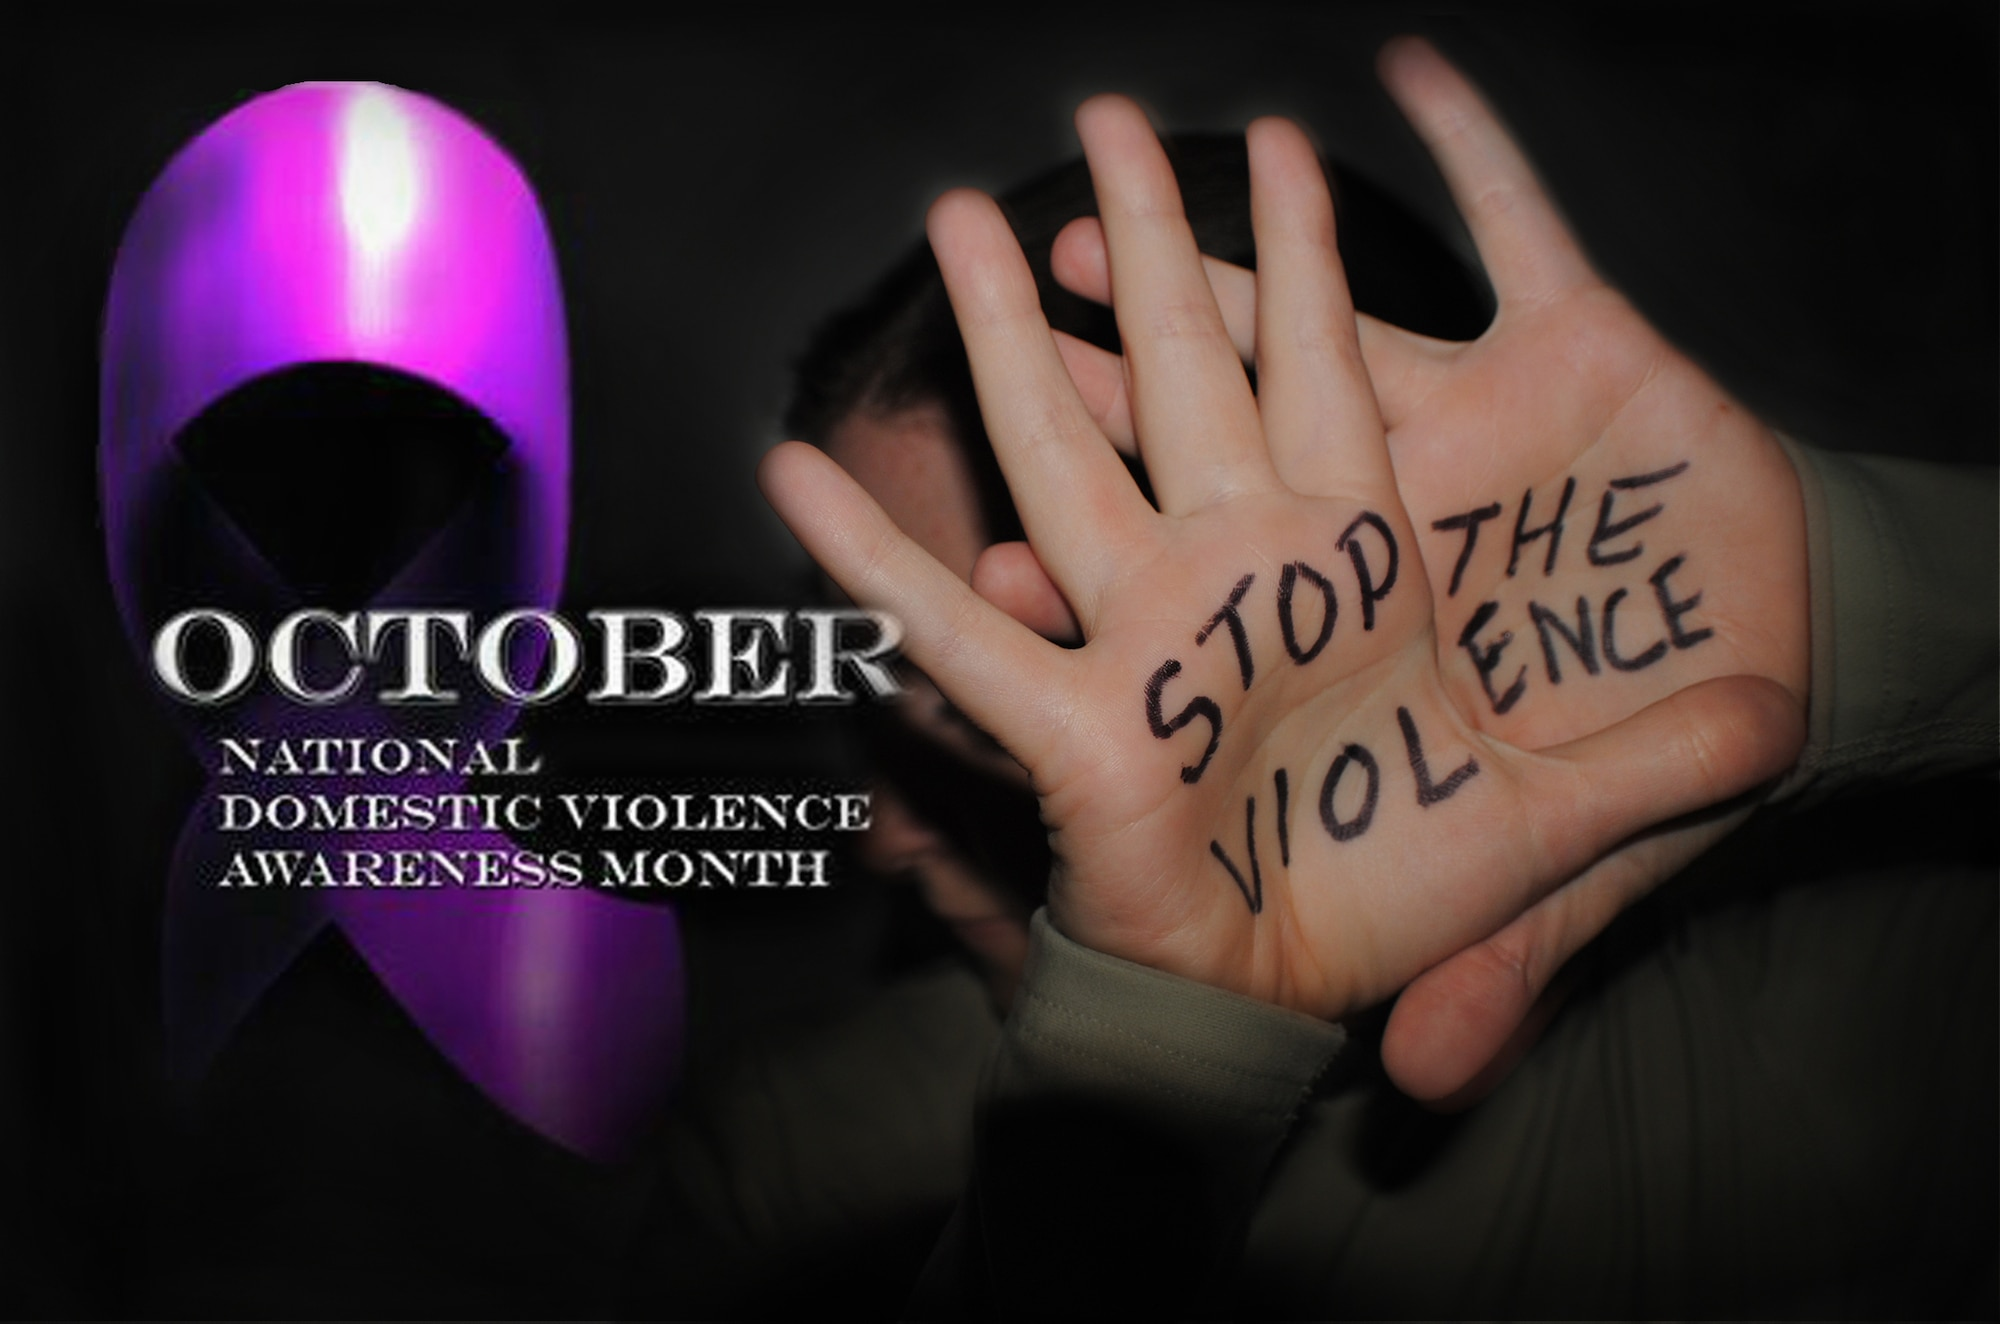 Physical violence is often accompanied by emotionally abusive and controlling behavior as part of a much larger, systematic pattern of power and control and attempts to dehumanize.